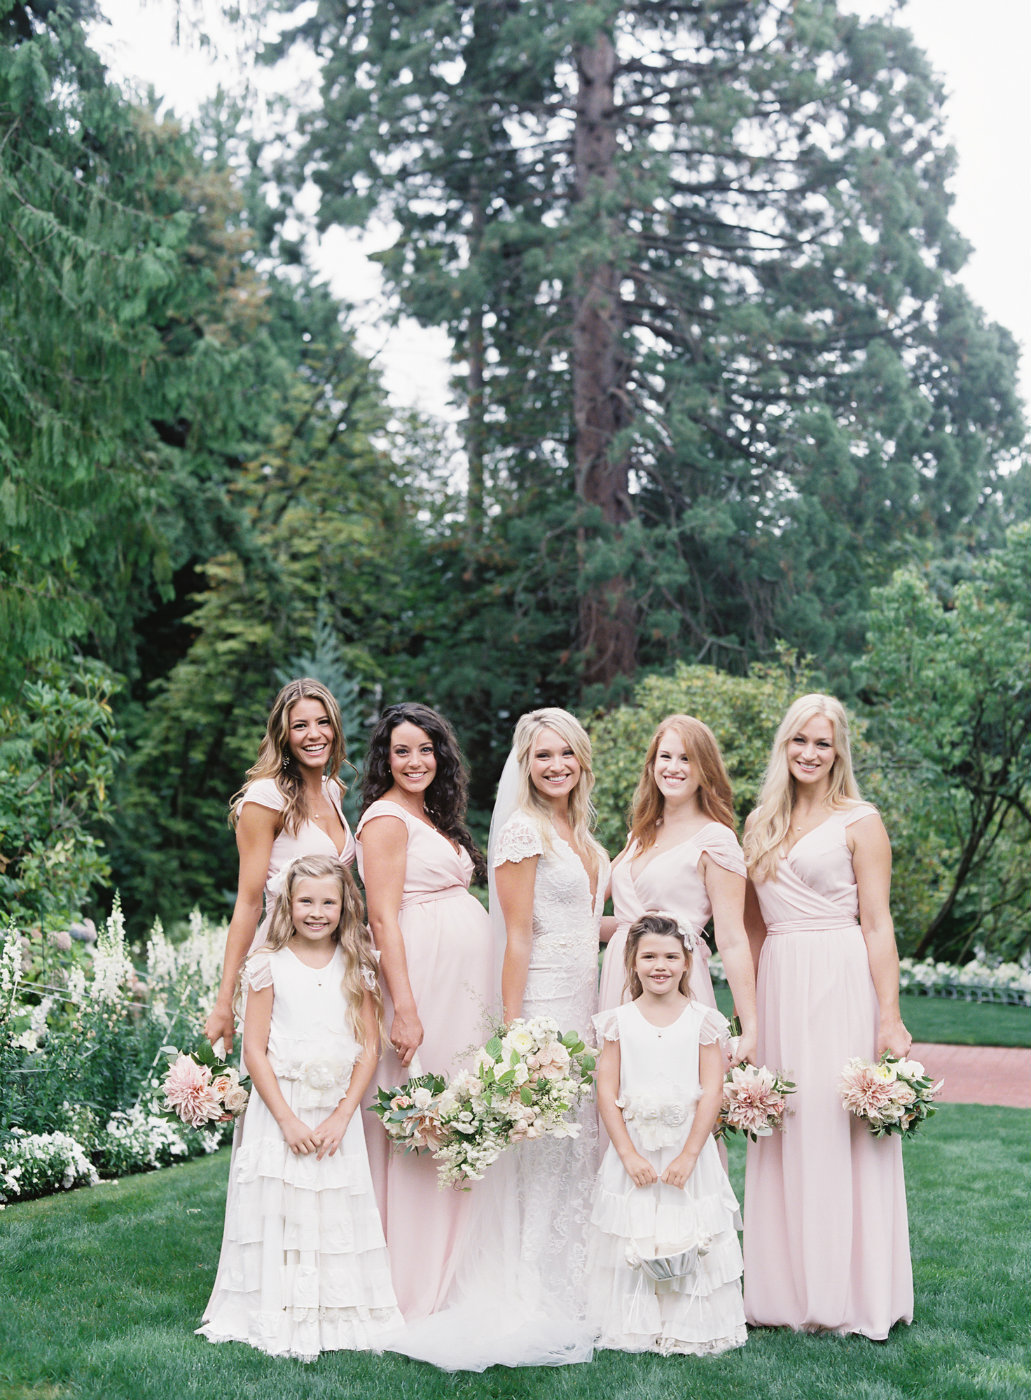 Sweet bridal party with flower girls holding cream and blush bouquets.